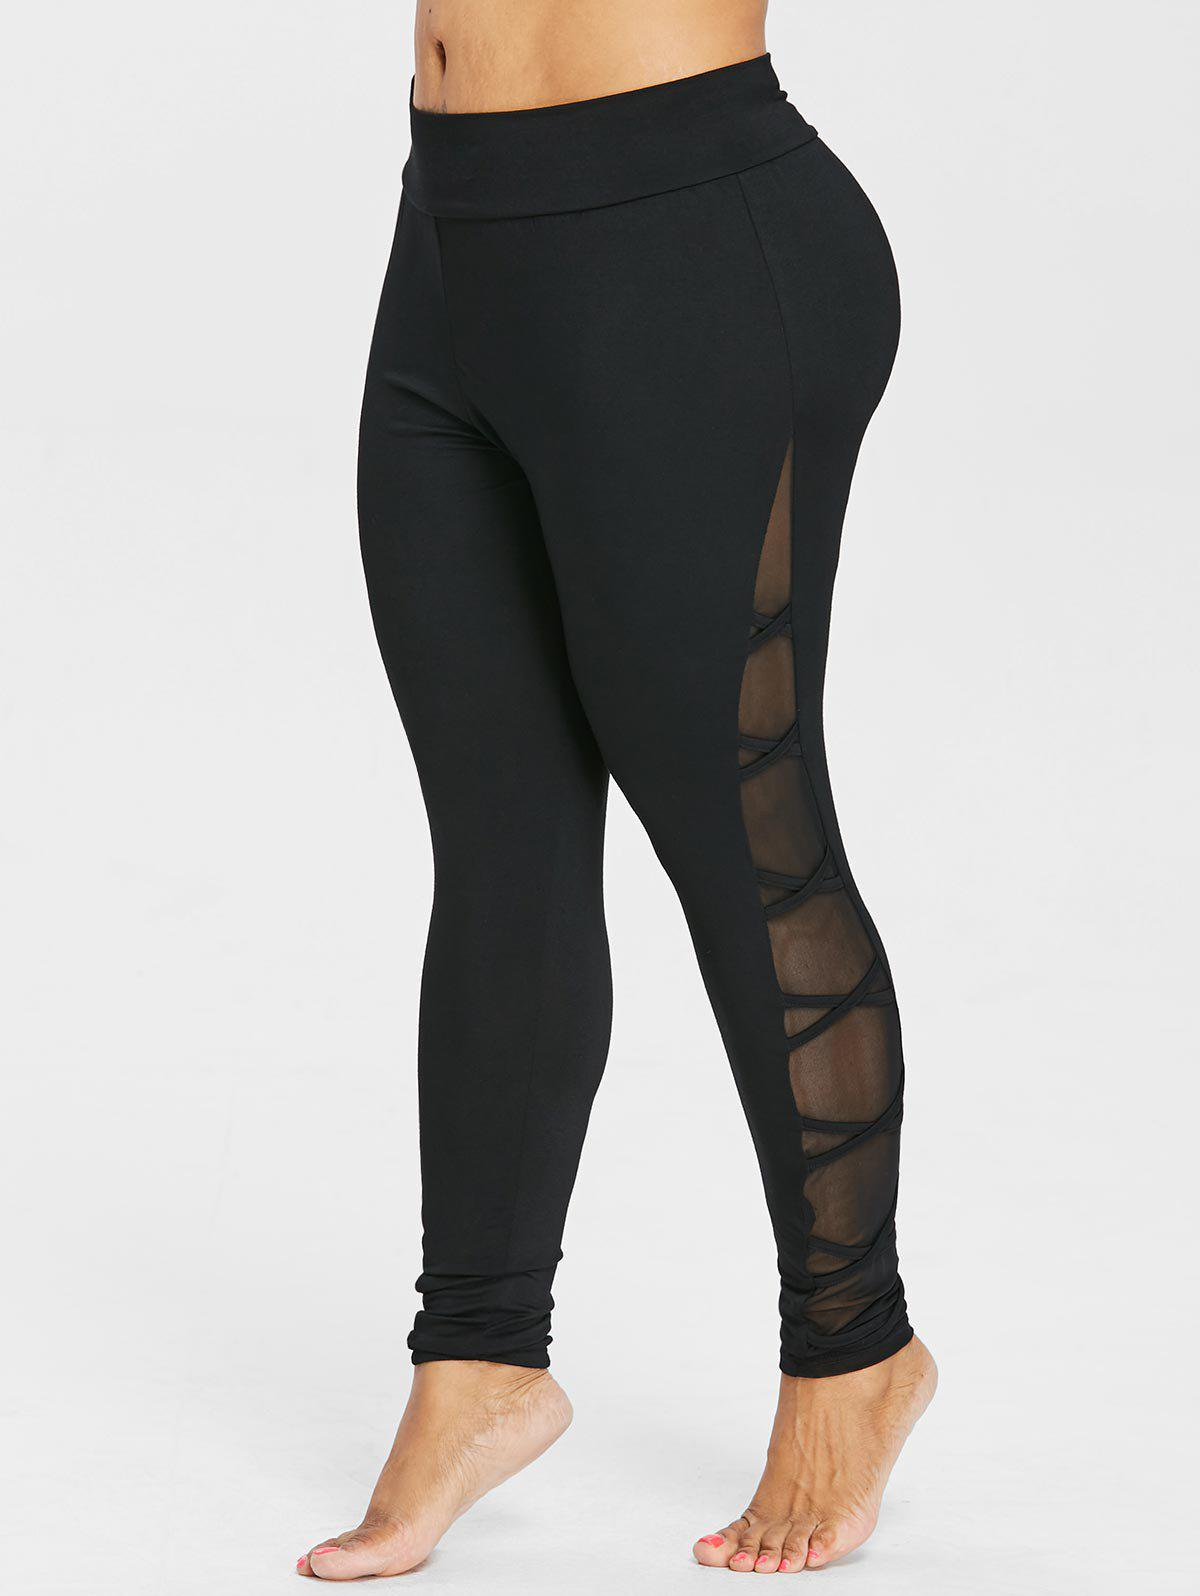 Plus Size Criss Cross Sheer Side Leggings - BLACK 4X